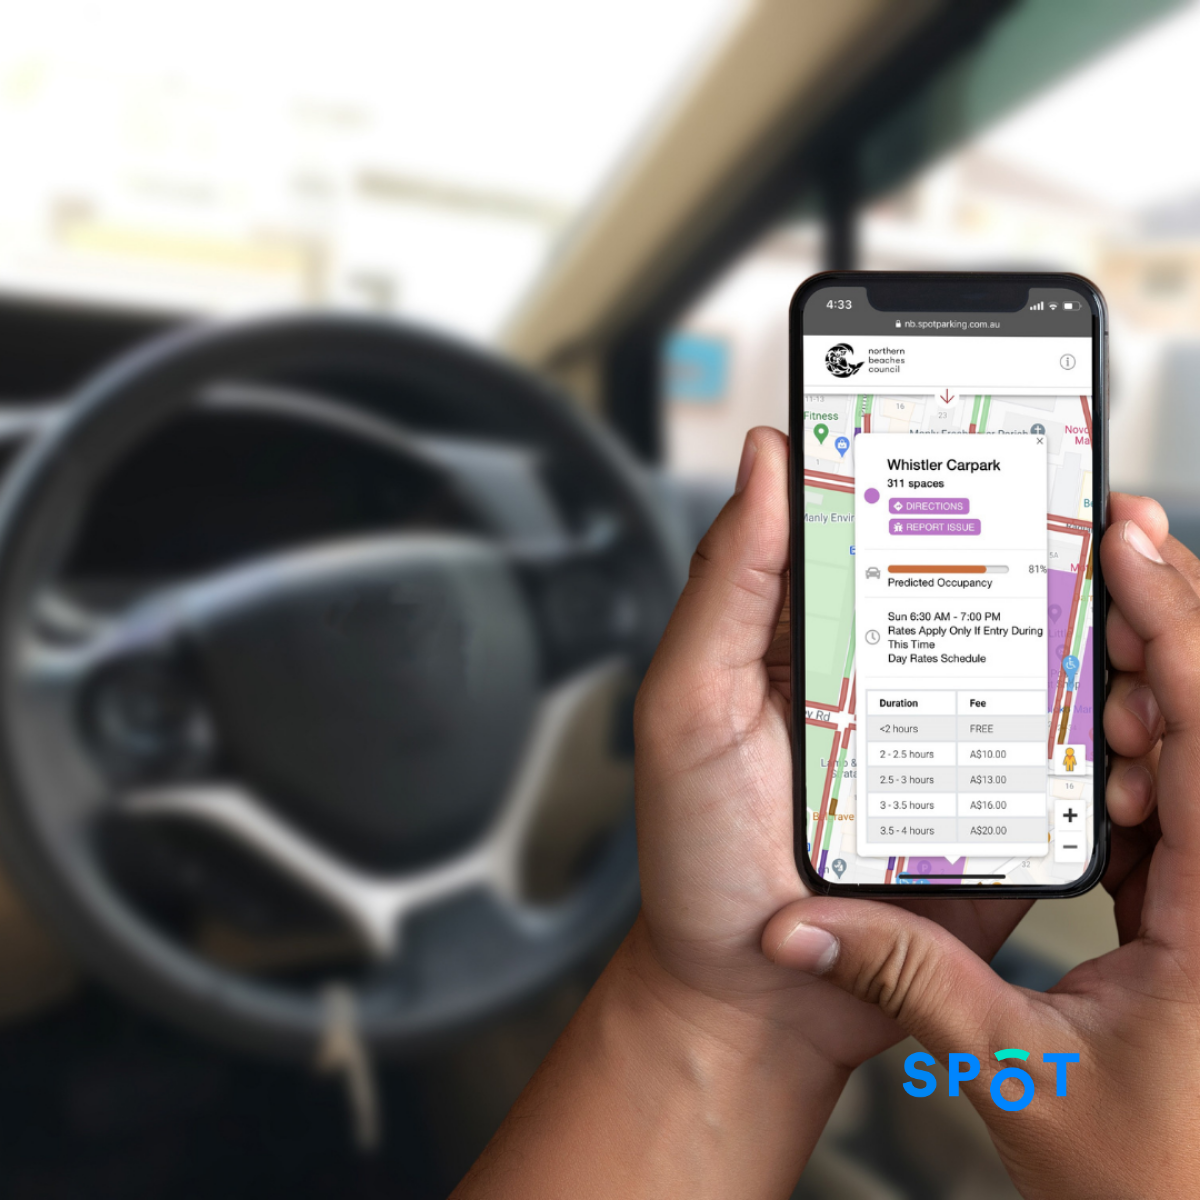 Spot Parking's innovative parking solutions products for cities and universities